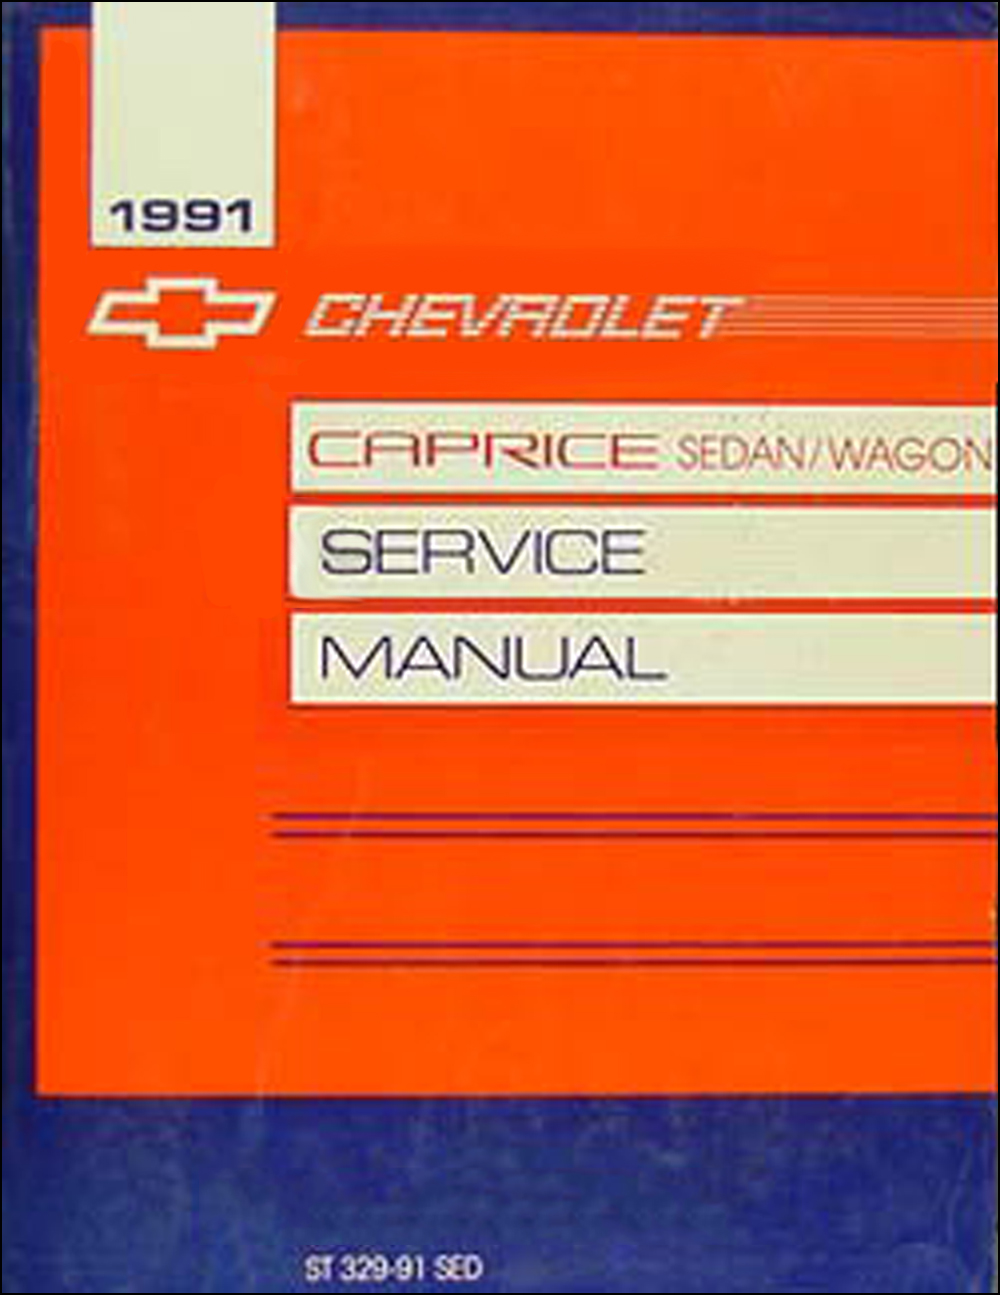 1991 Chevy Caprice Wagon Repair Shop Manual Original on